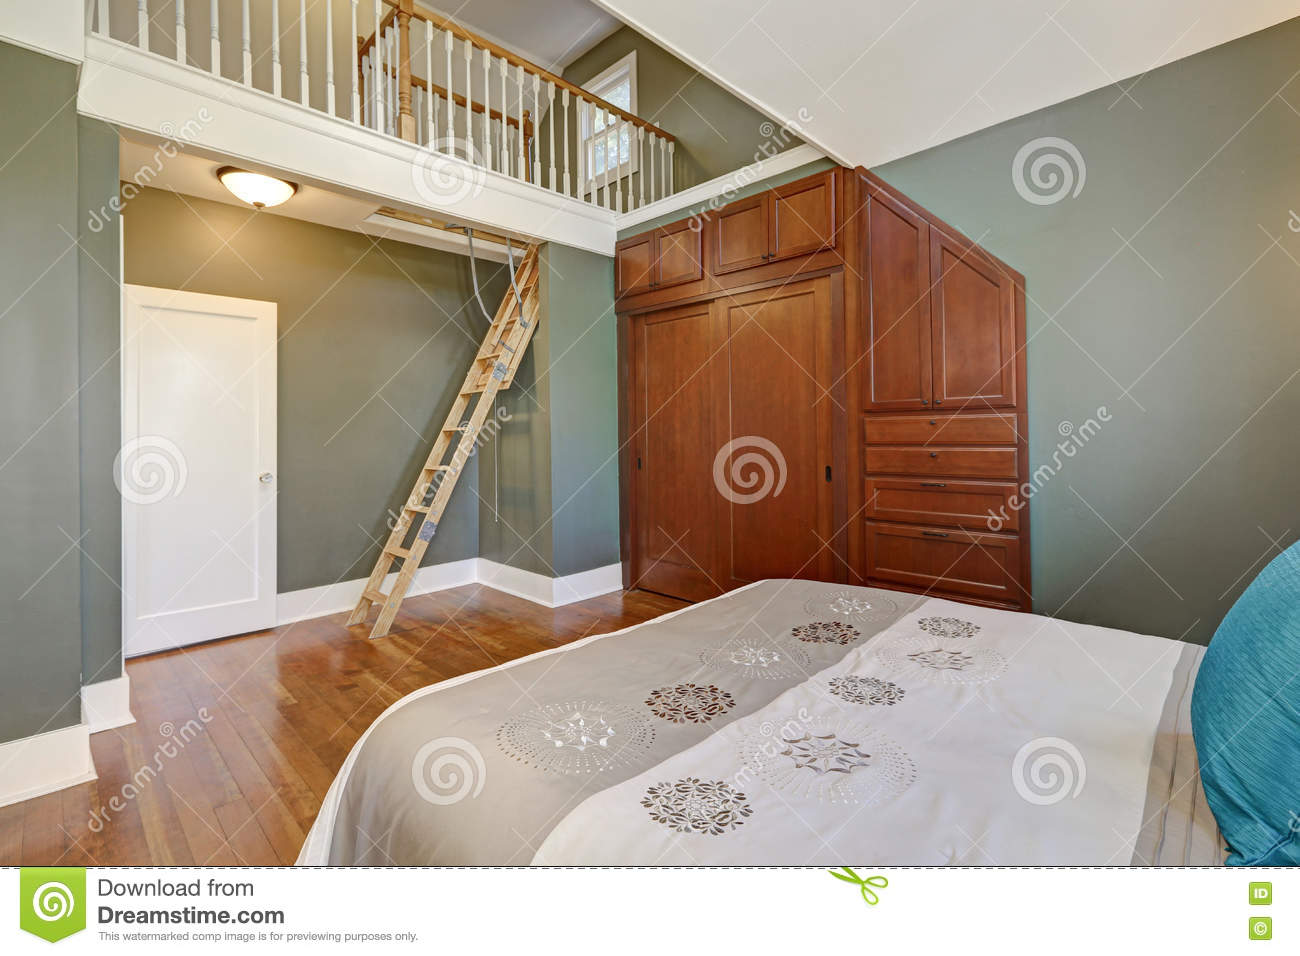 high vaulted ceiling bedroom interior design stock photo image of